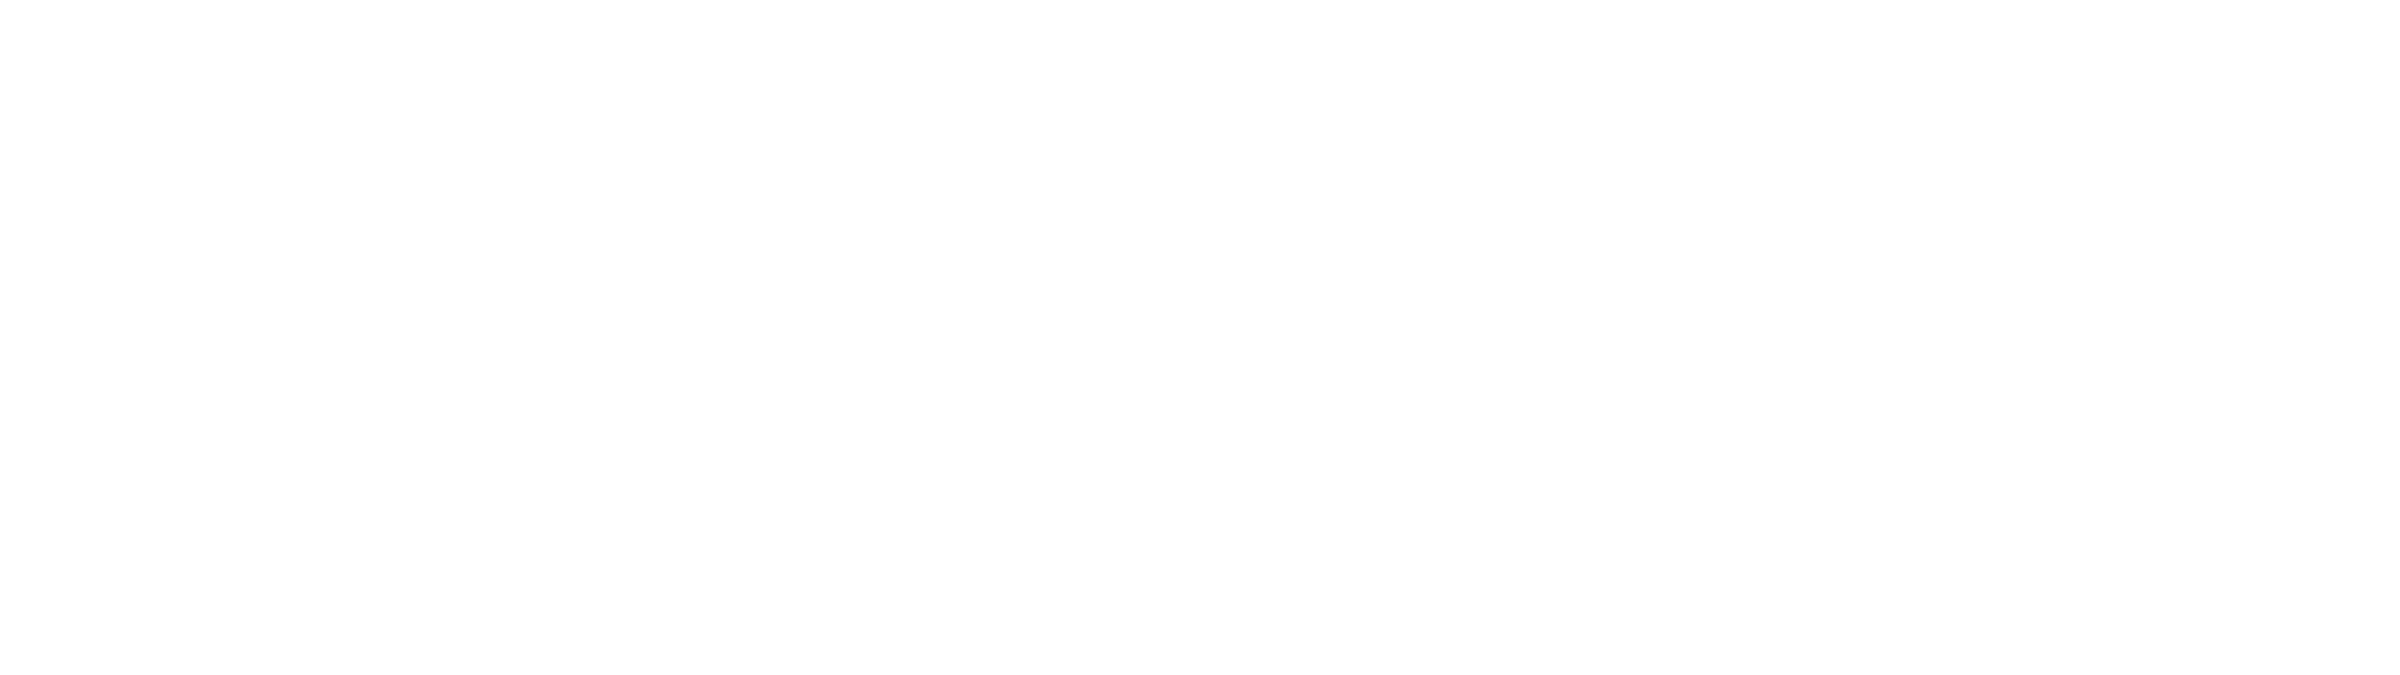 https://sabrinaphilipp.com/wp-content/uploads/2019/05/forbes-logo-2.png